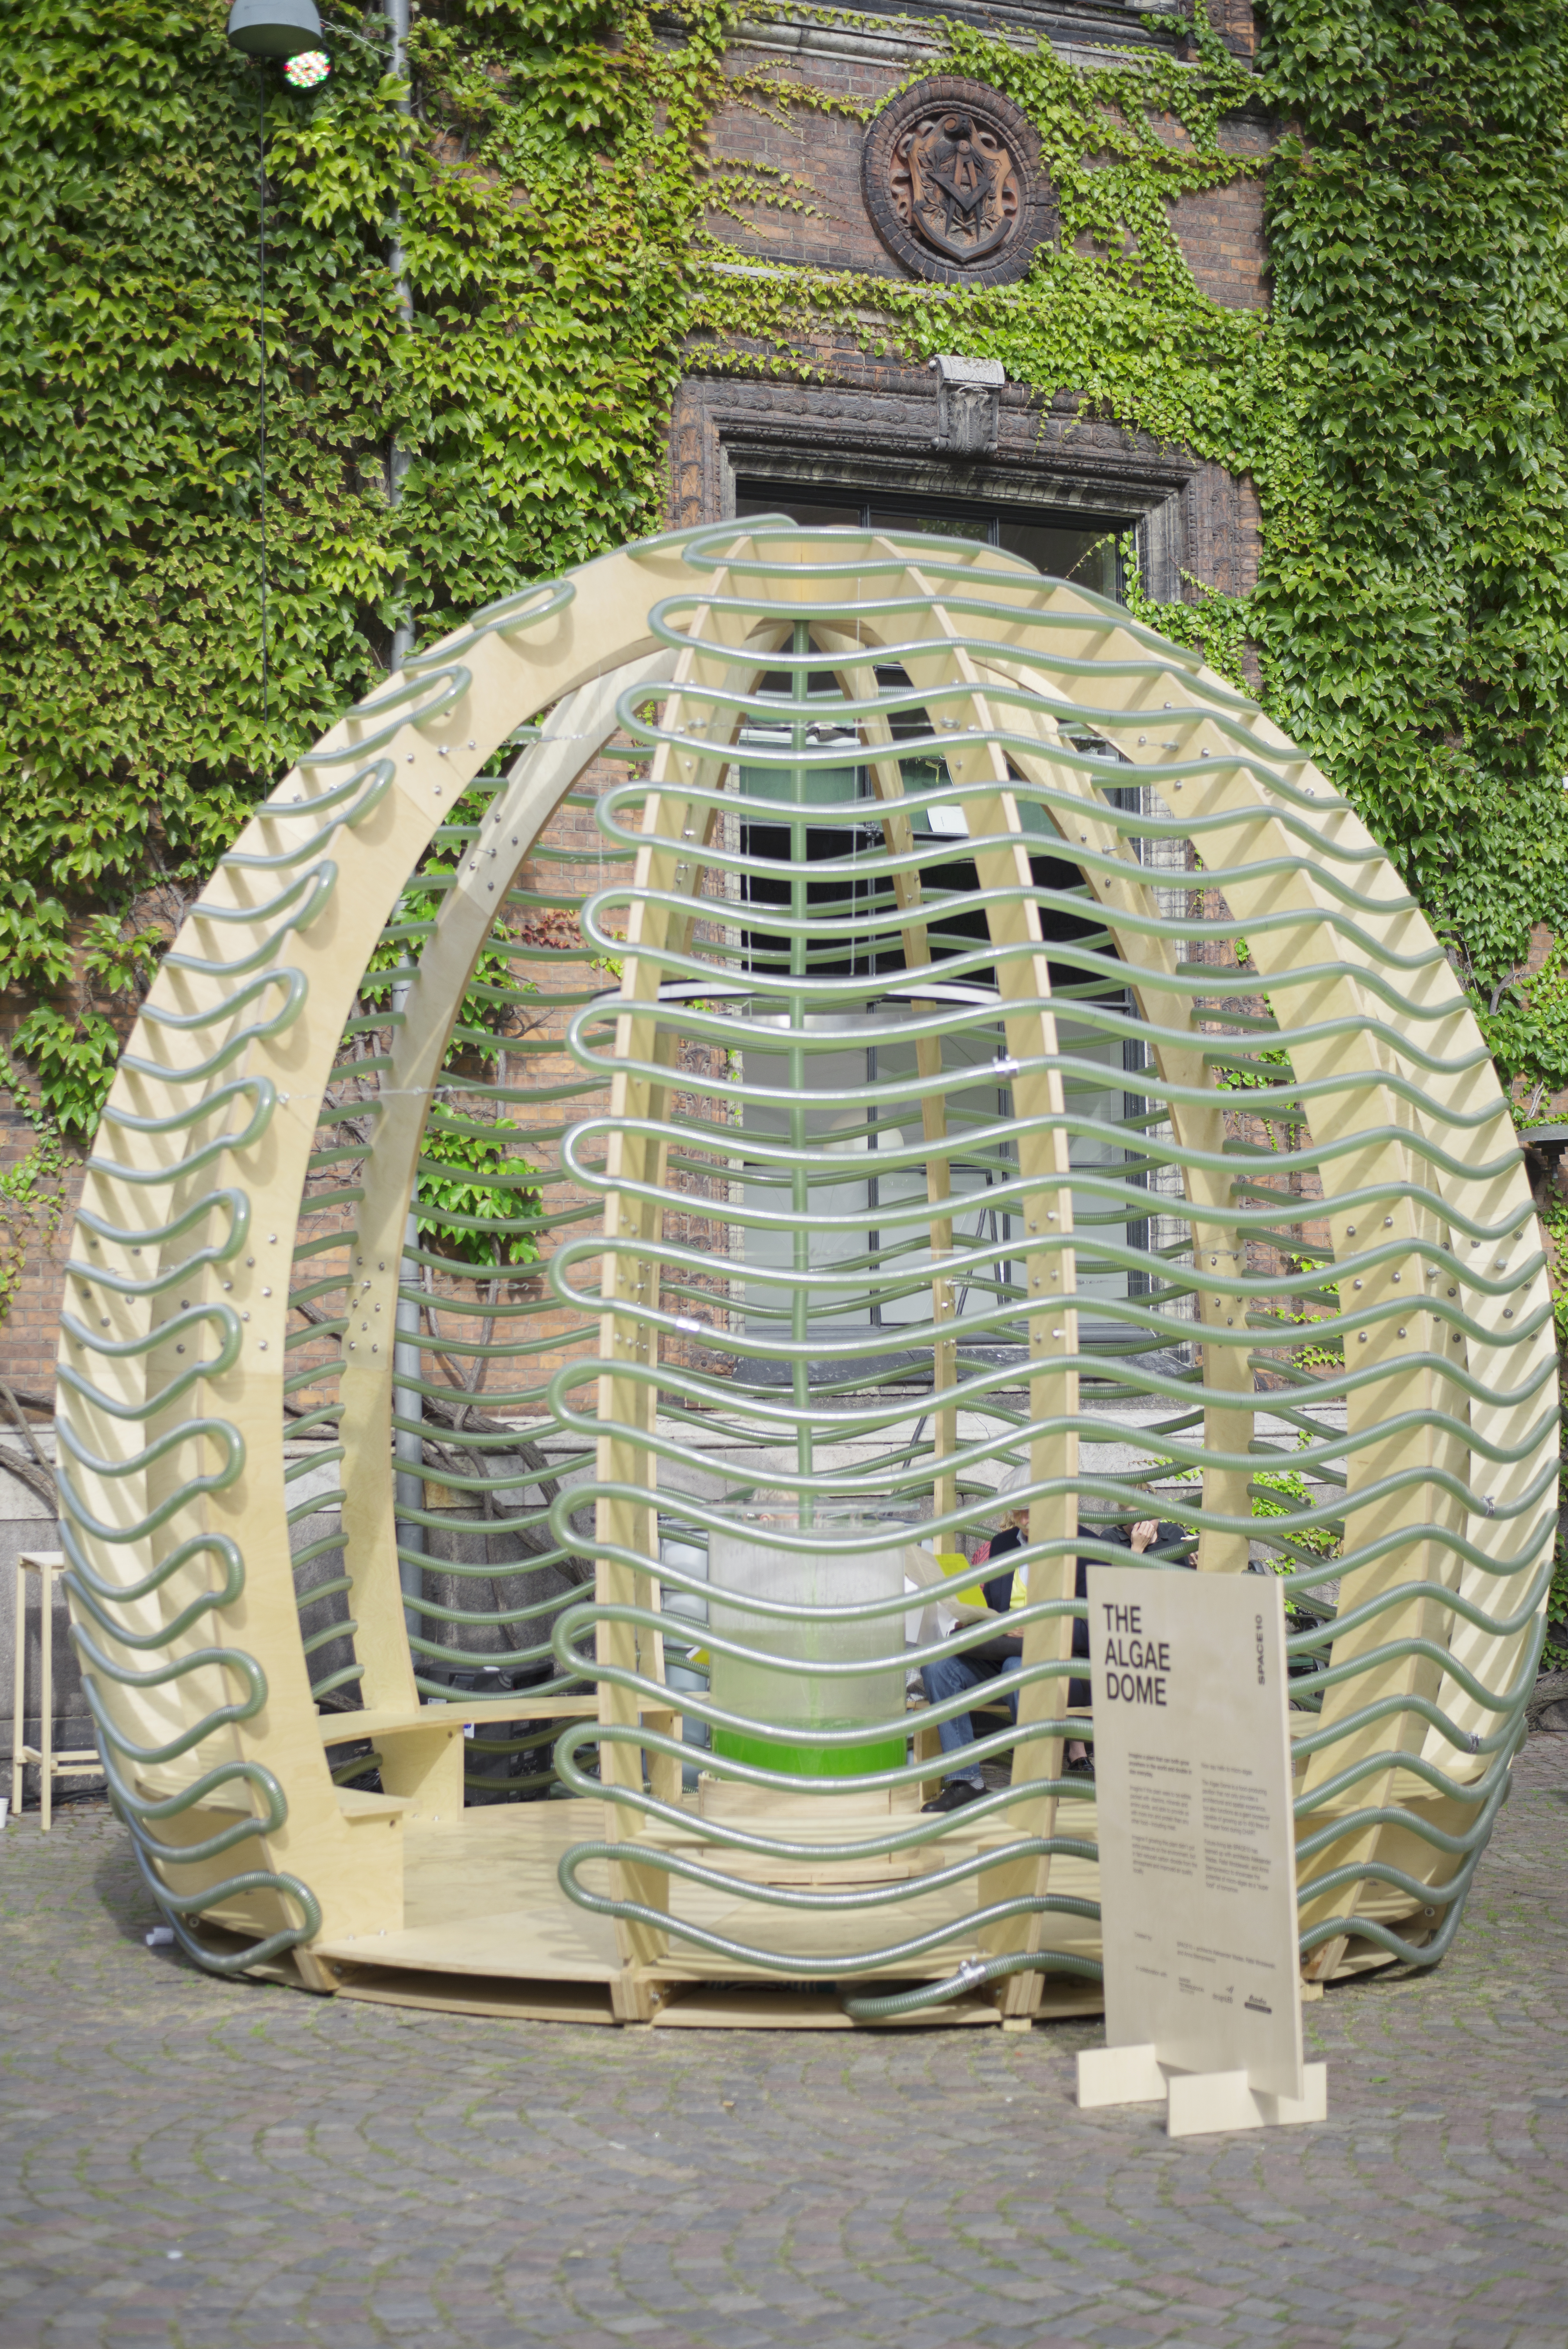 Ikea's Space10 develops the Algae Dome, a prototype for food-producing architecture